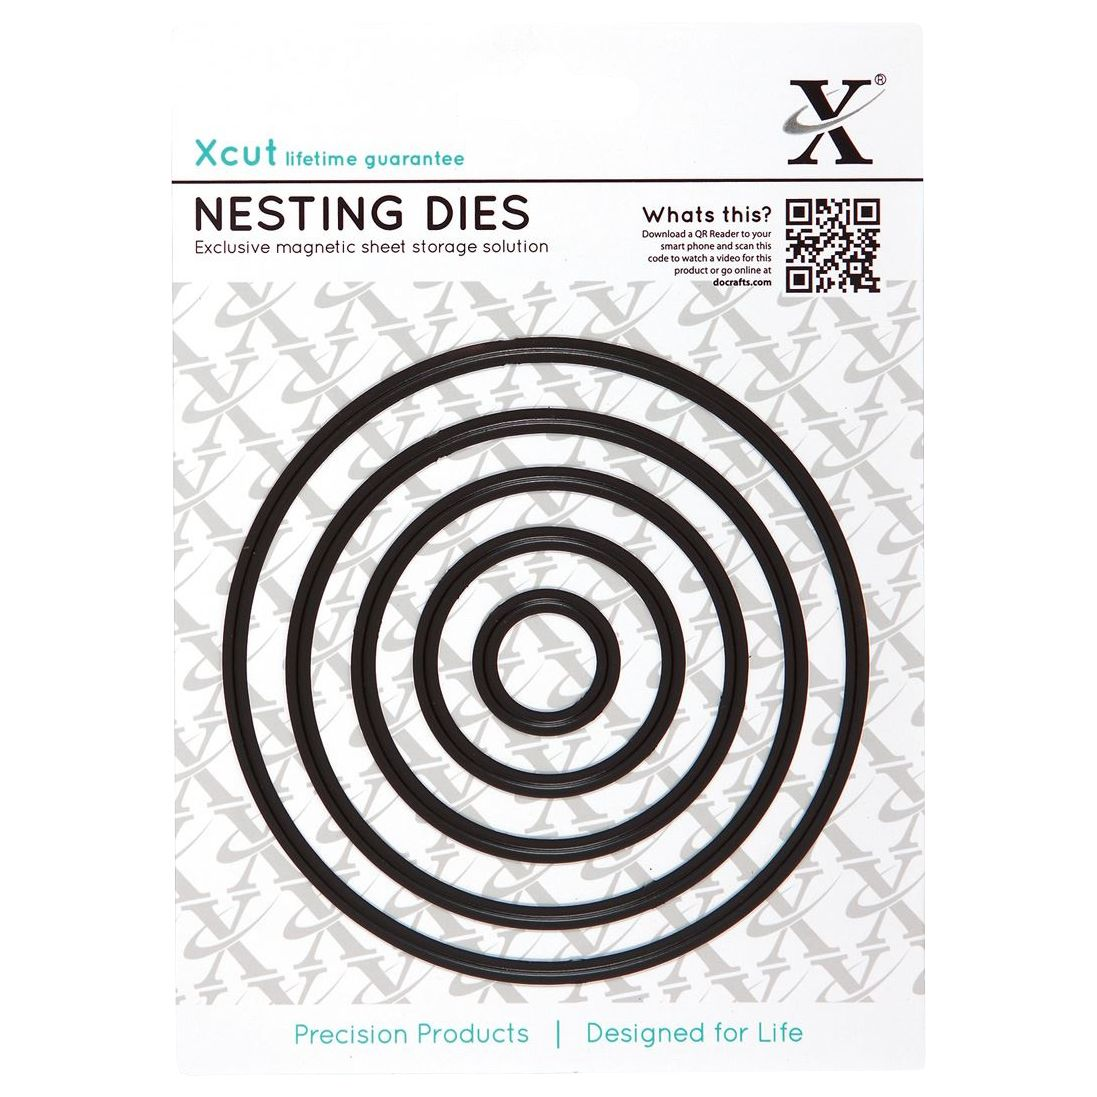 DoCrafts Docrafts Xcut Nesting Circle Dies, Pack of 5